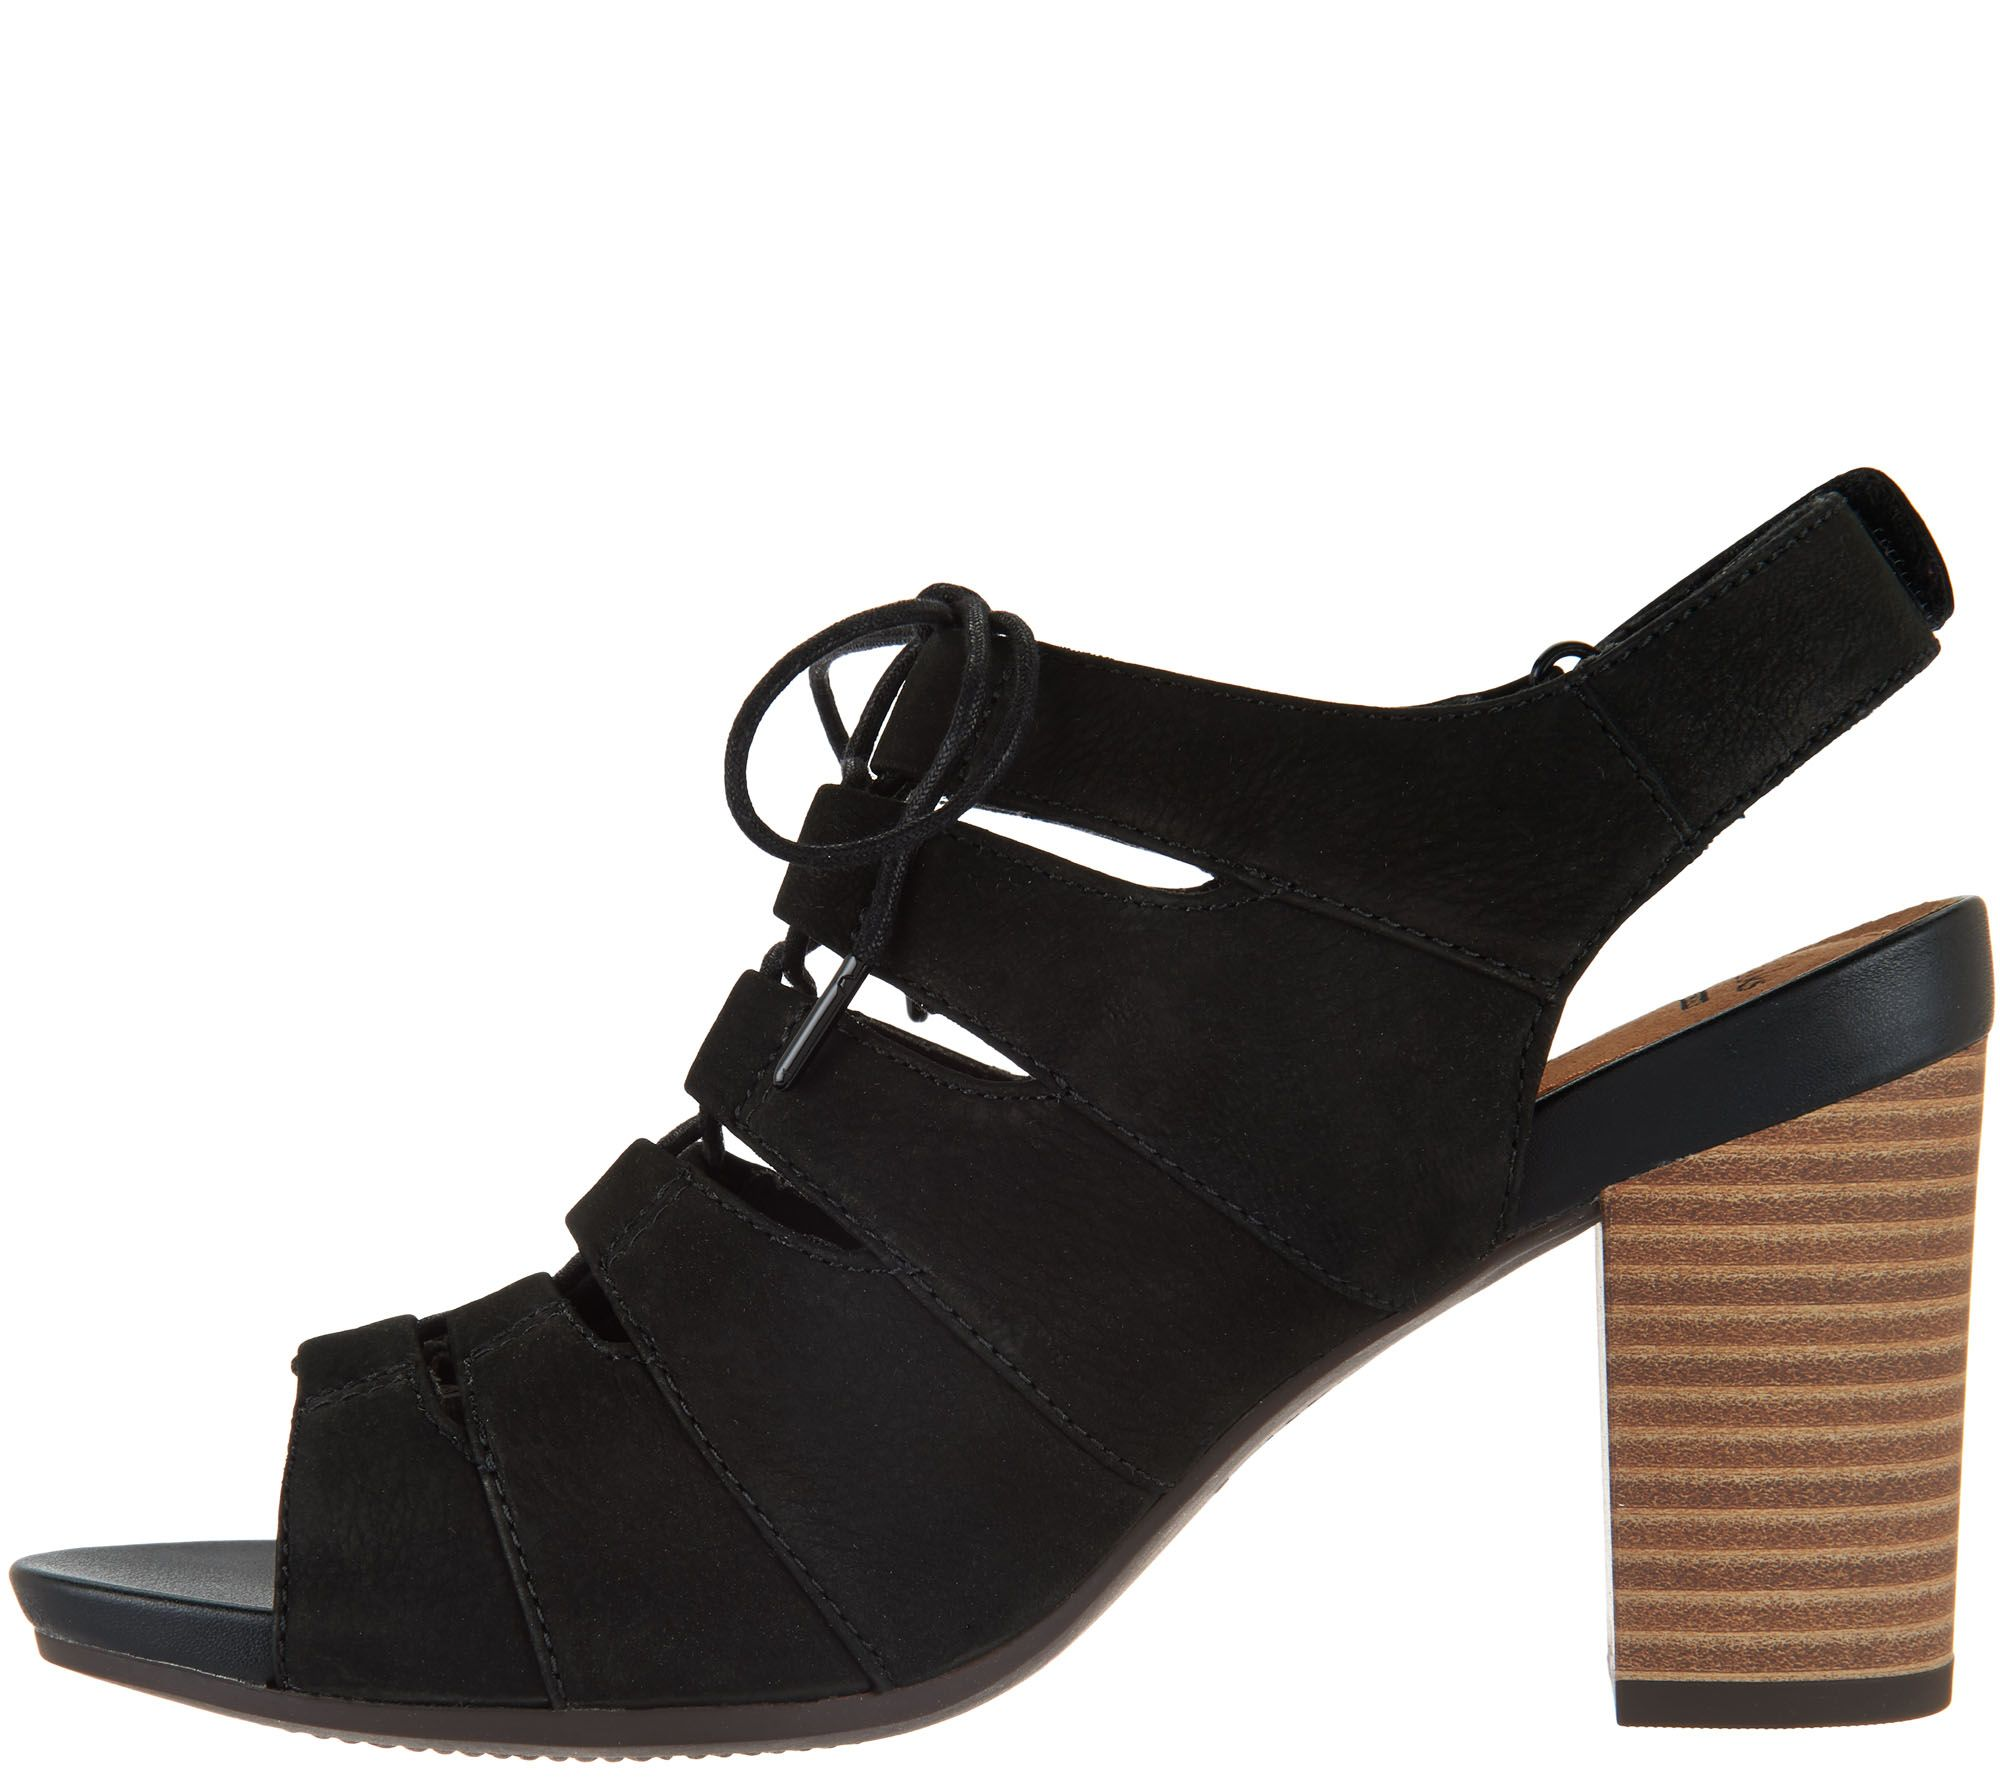 260fc7be654 Clarks Nubuck Leather Block Heel Ghillie Sandals - Banoy Wanetta - Page 1 —  QVC.com